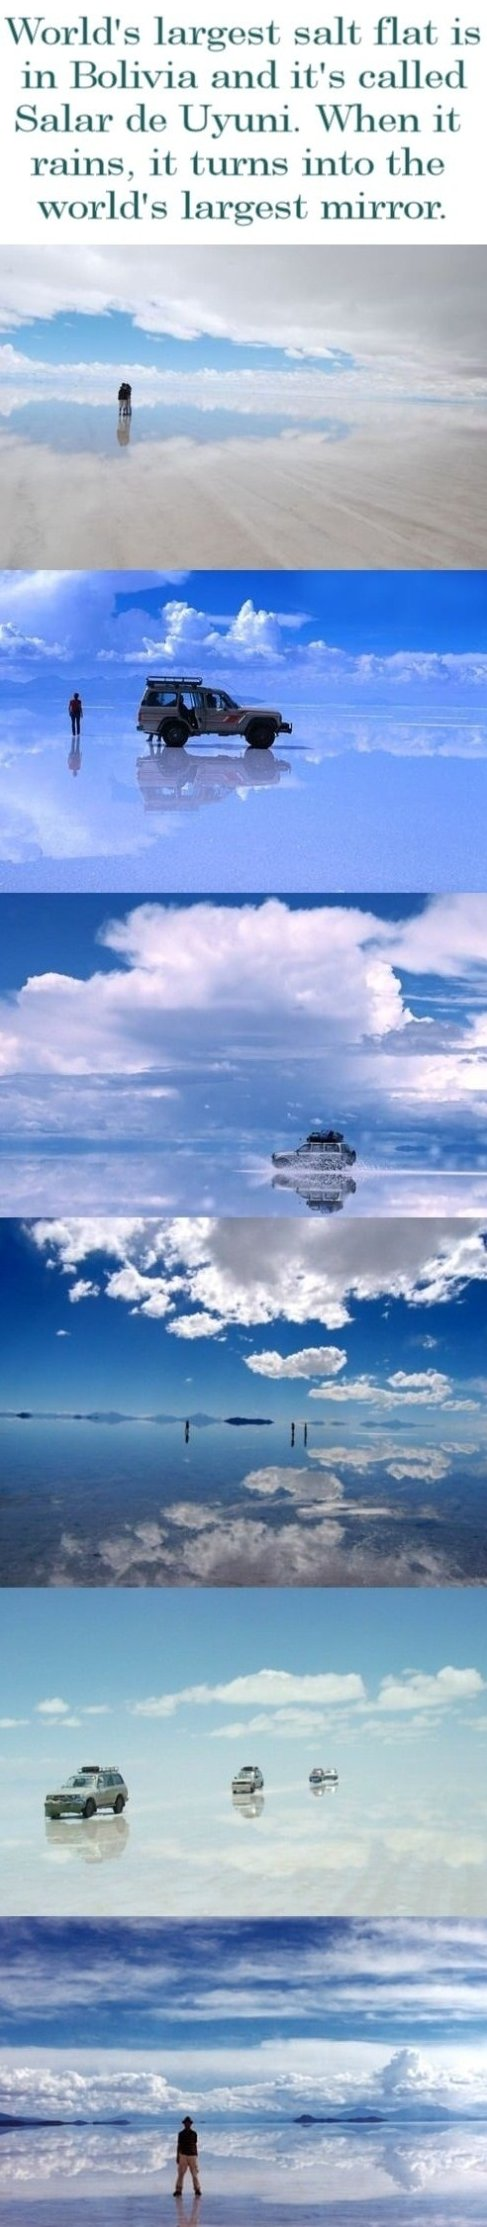 Salar de Uyuni – Border between heaven and Earth